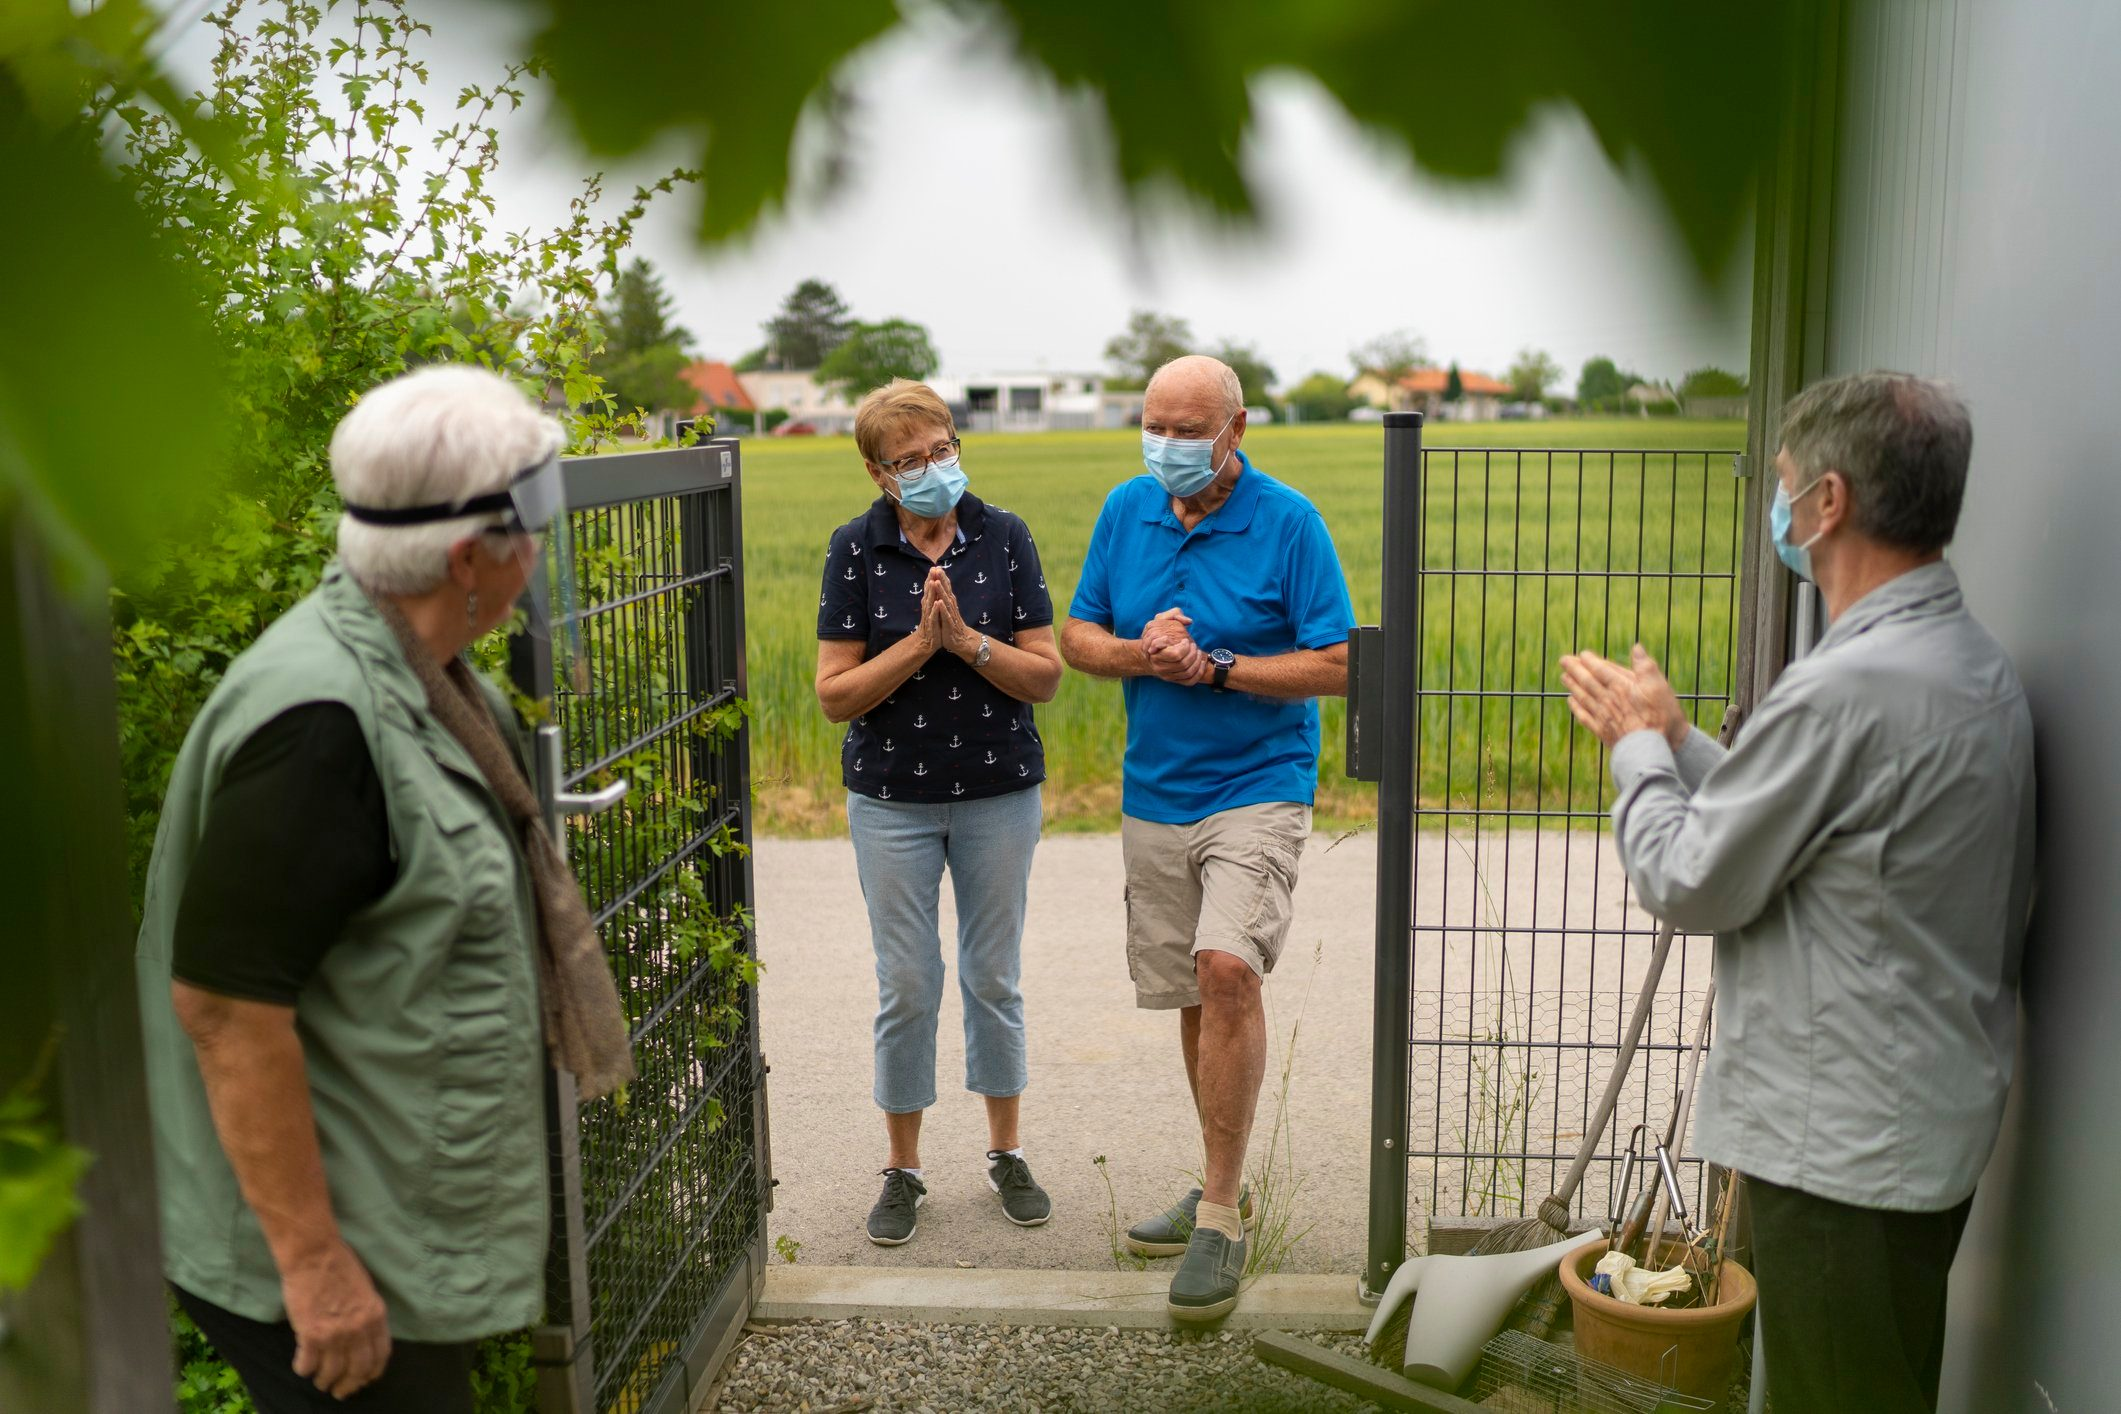 seniors visiting at garden fence door, new greetings in times of coronavirus